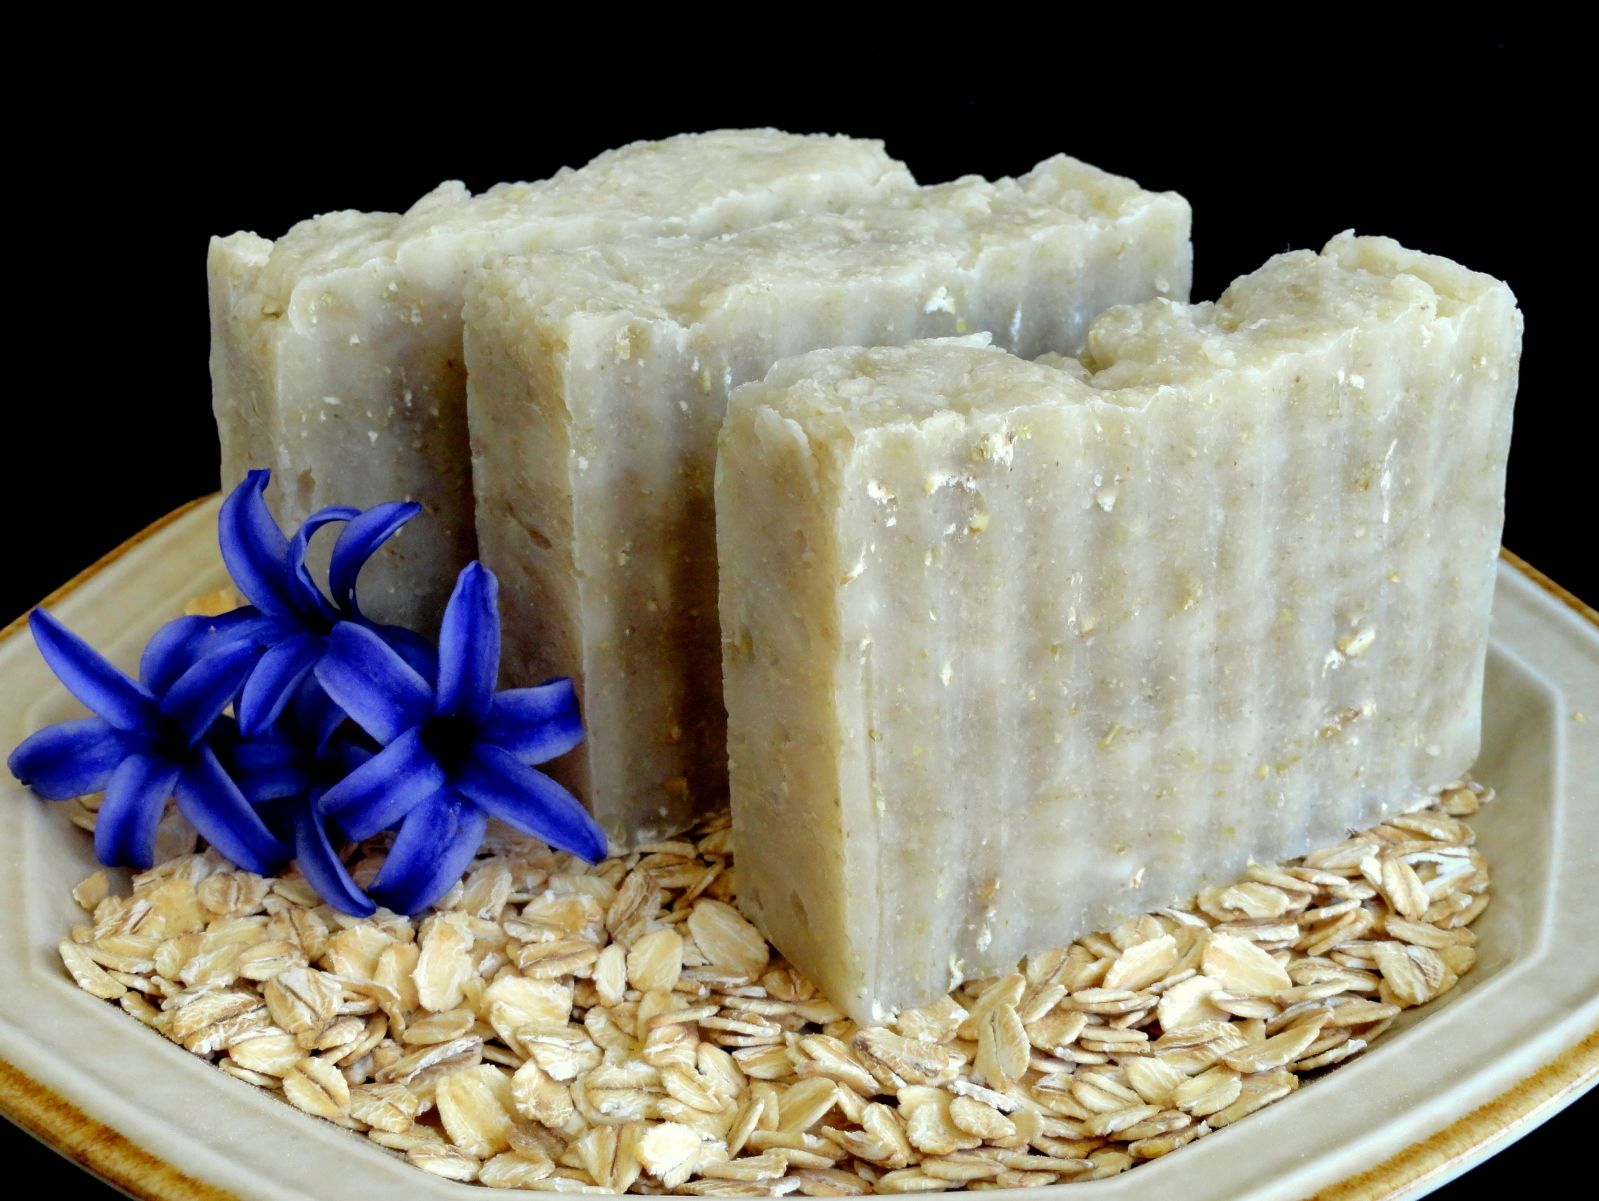 Why are hot process olive soaps so wonderful and good for